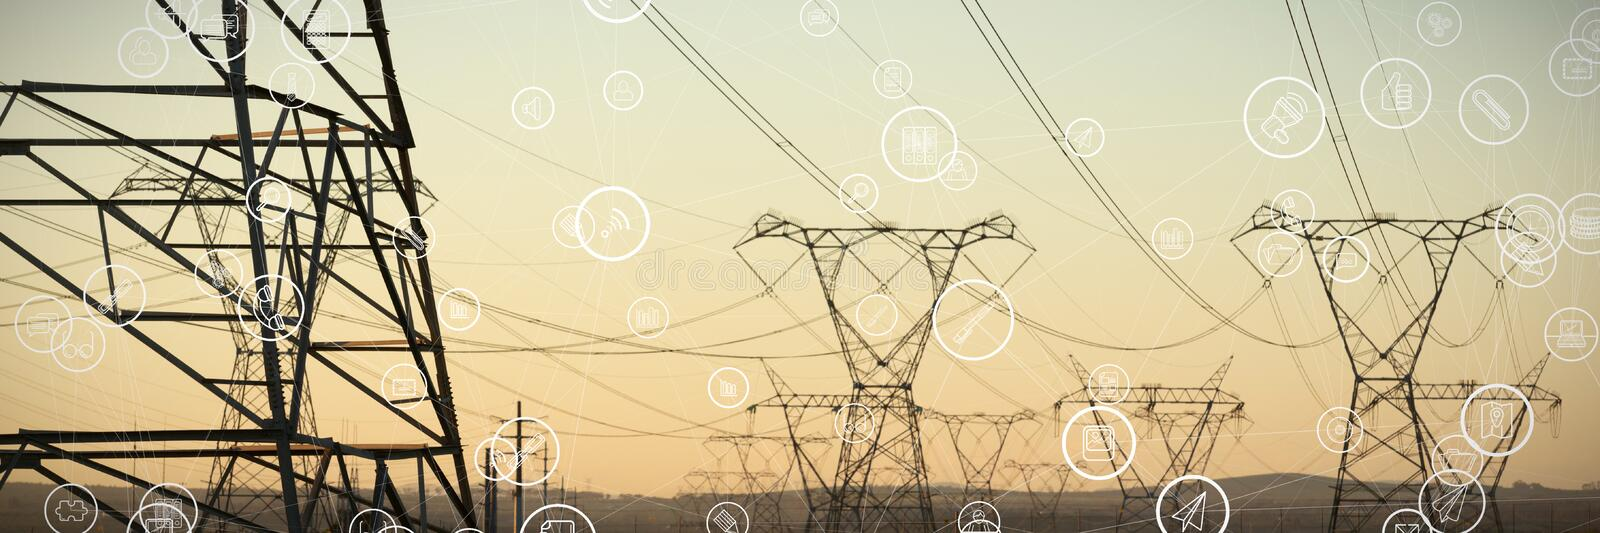 Composite image of technology icons. Technology icons against the evening electricity pylon silhouette stock images